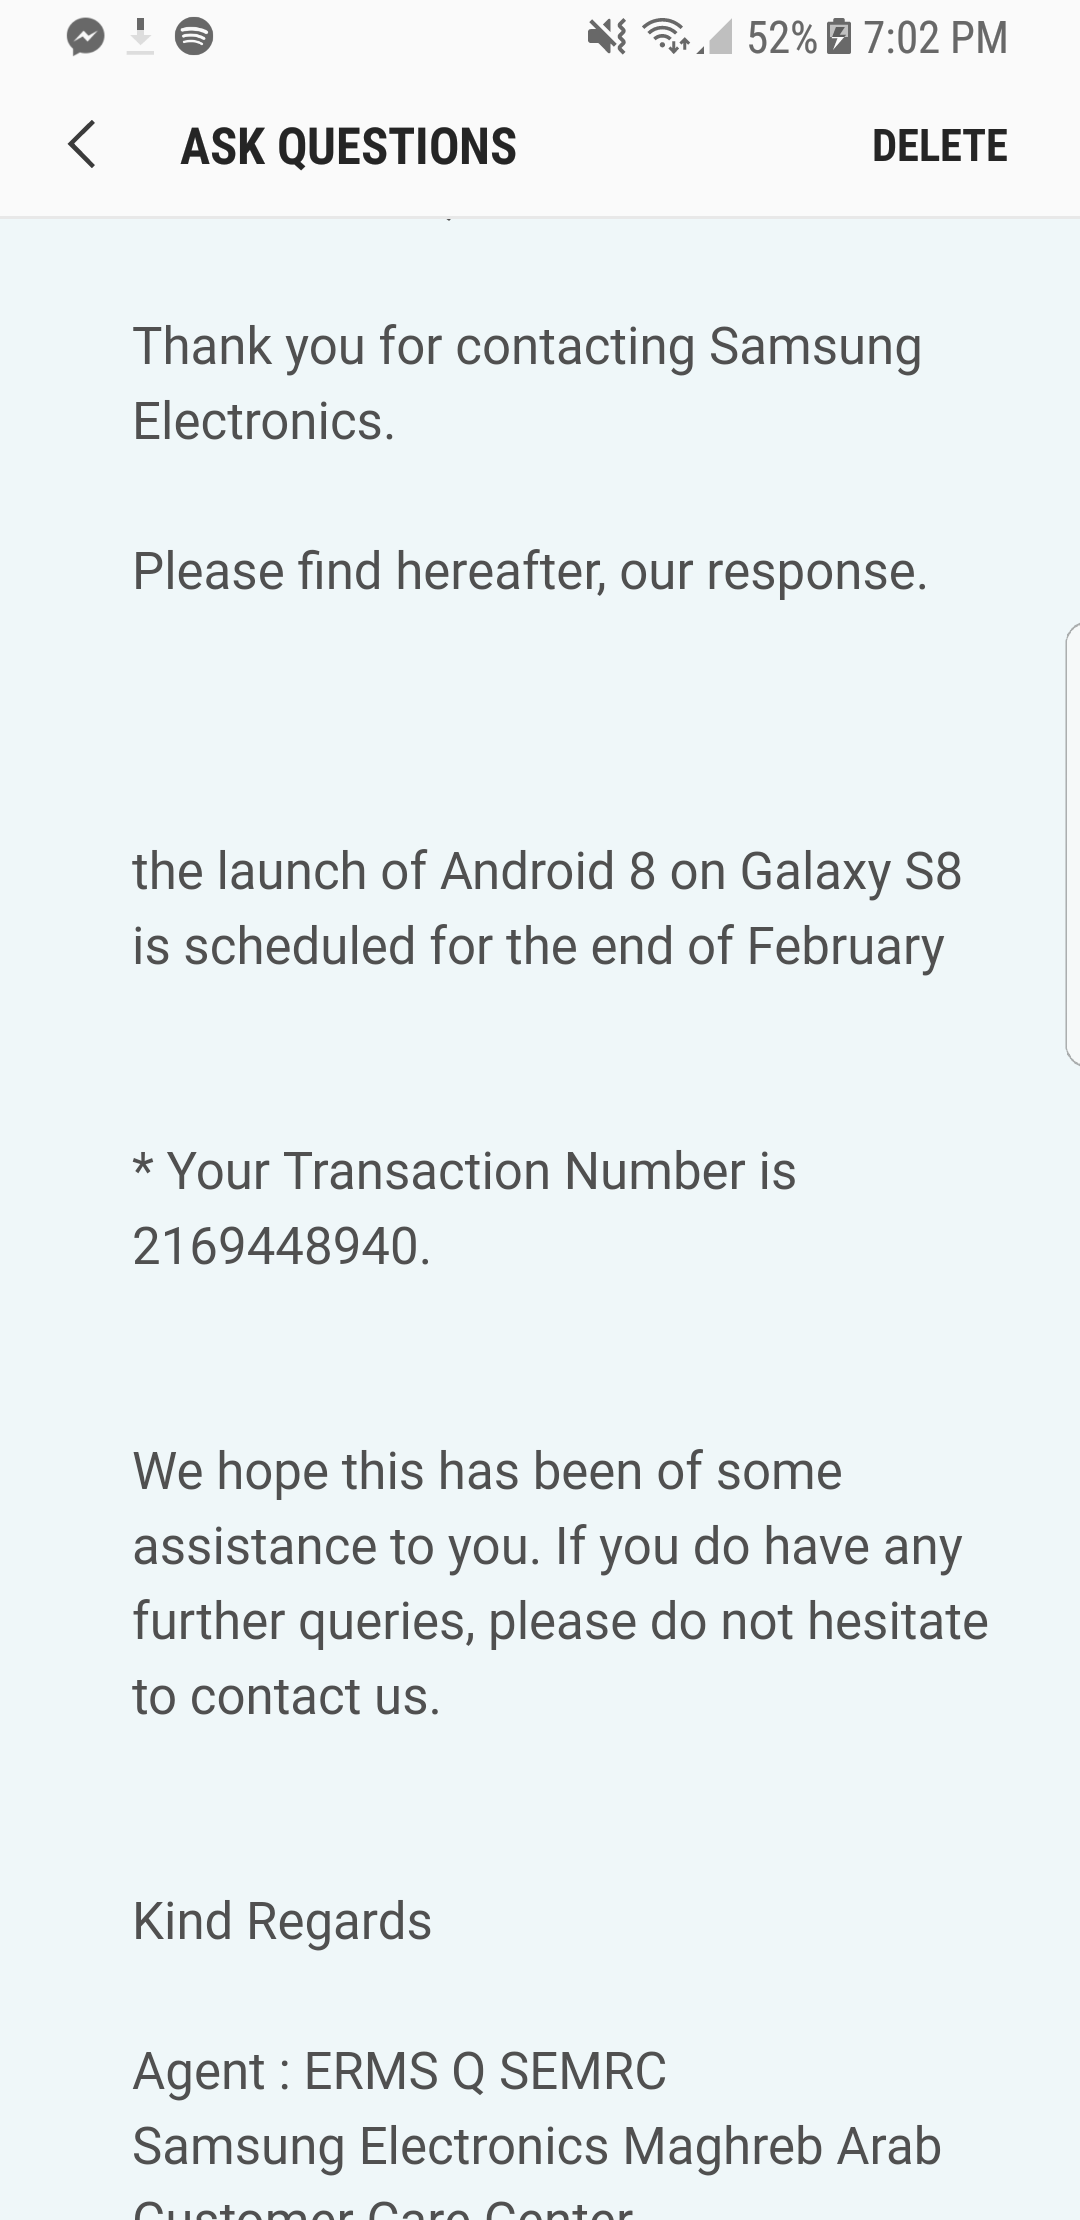 Galaxy S8 Oreo update scheduled for end of February for some